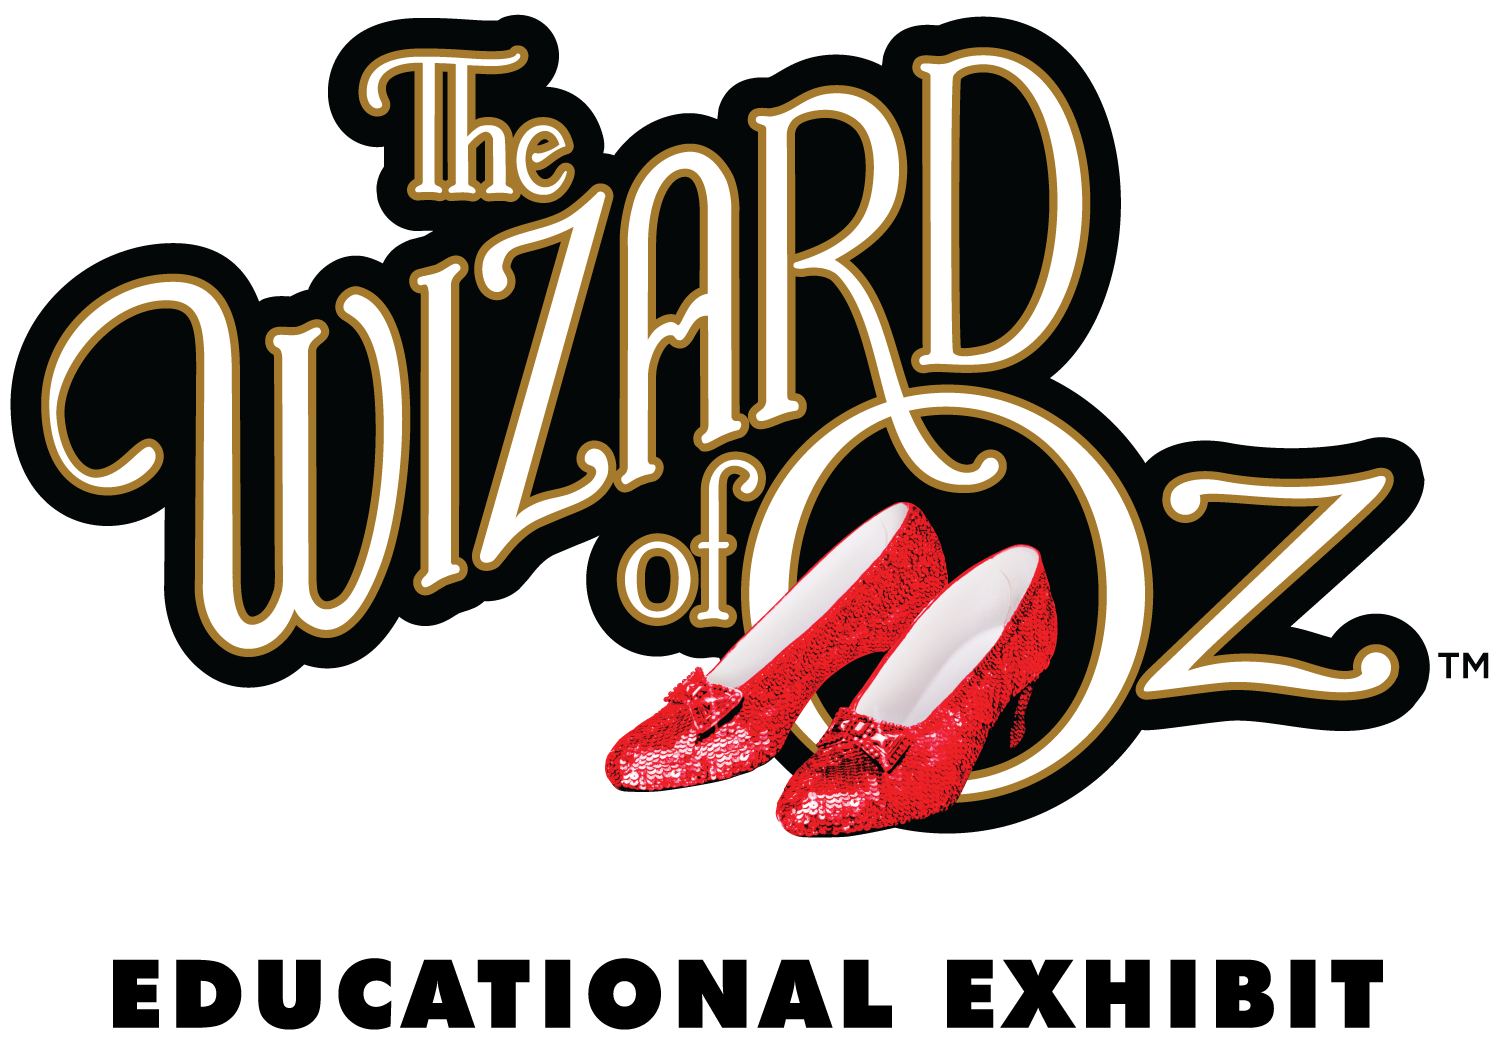 The Wizard of Oz Educational Exhibit - Mayborn Museum